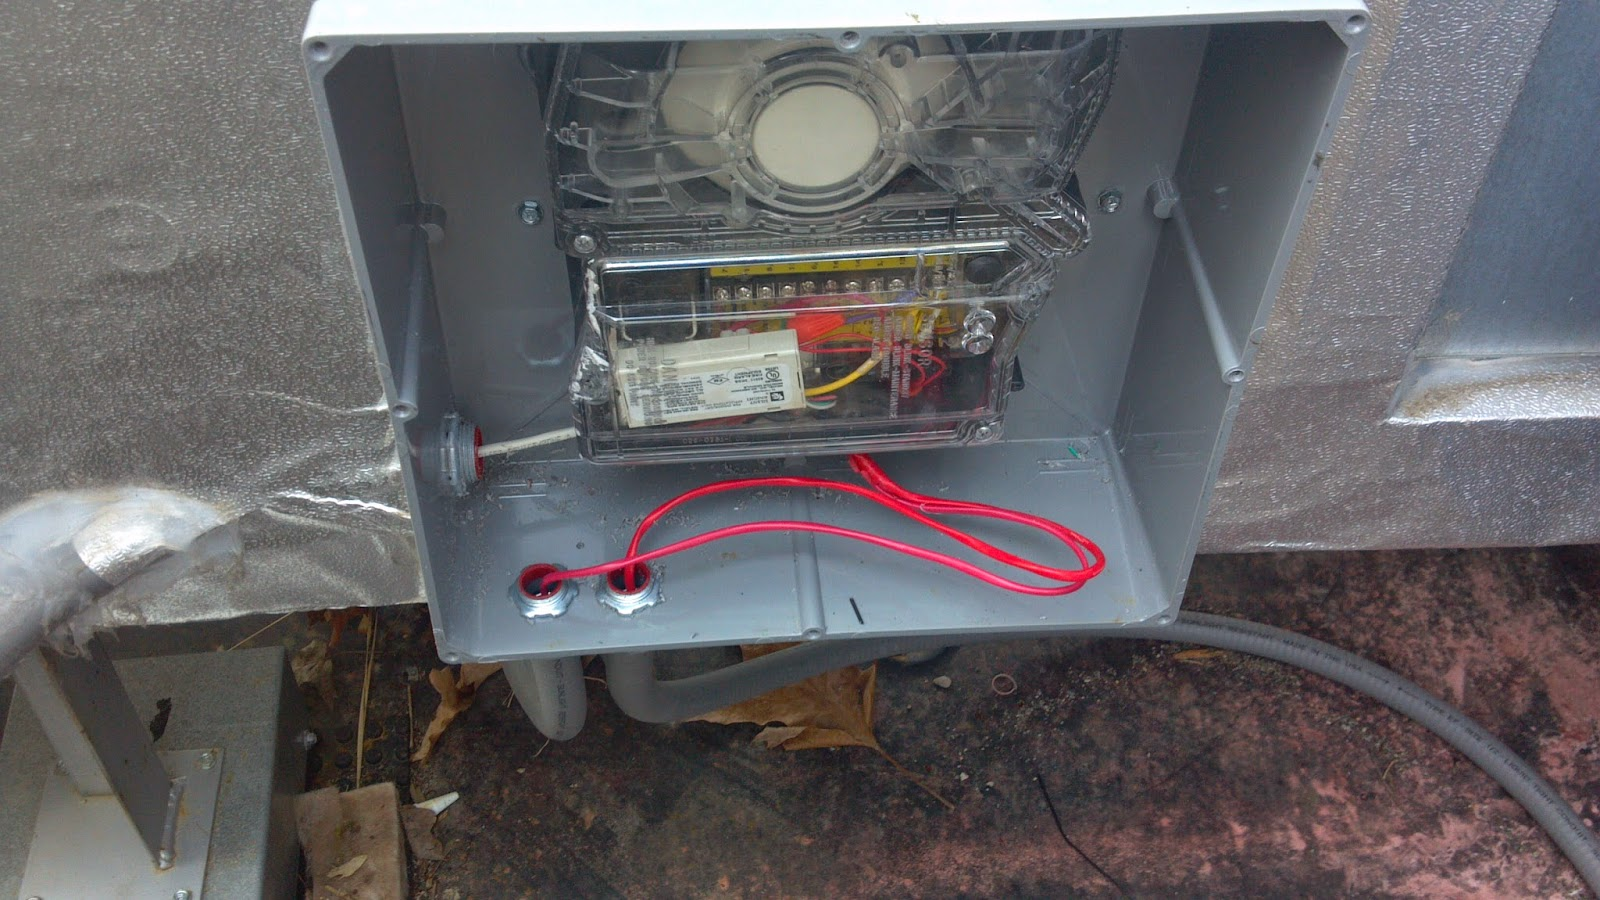 Nick S Fire Electrical Safety Amp Security Blog Hvac